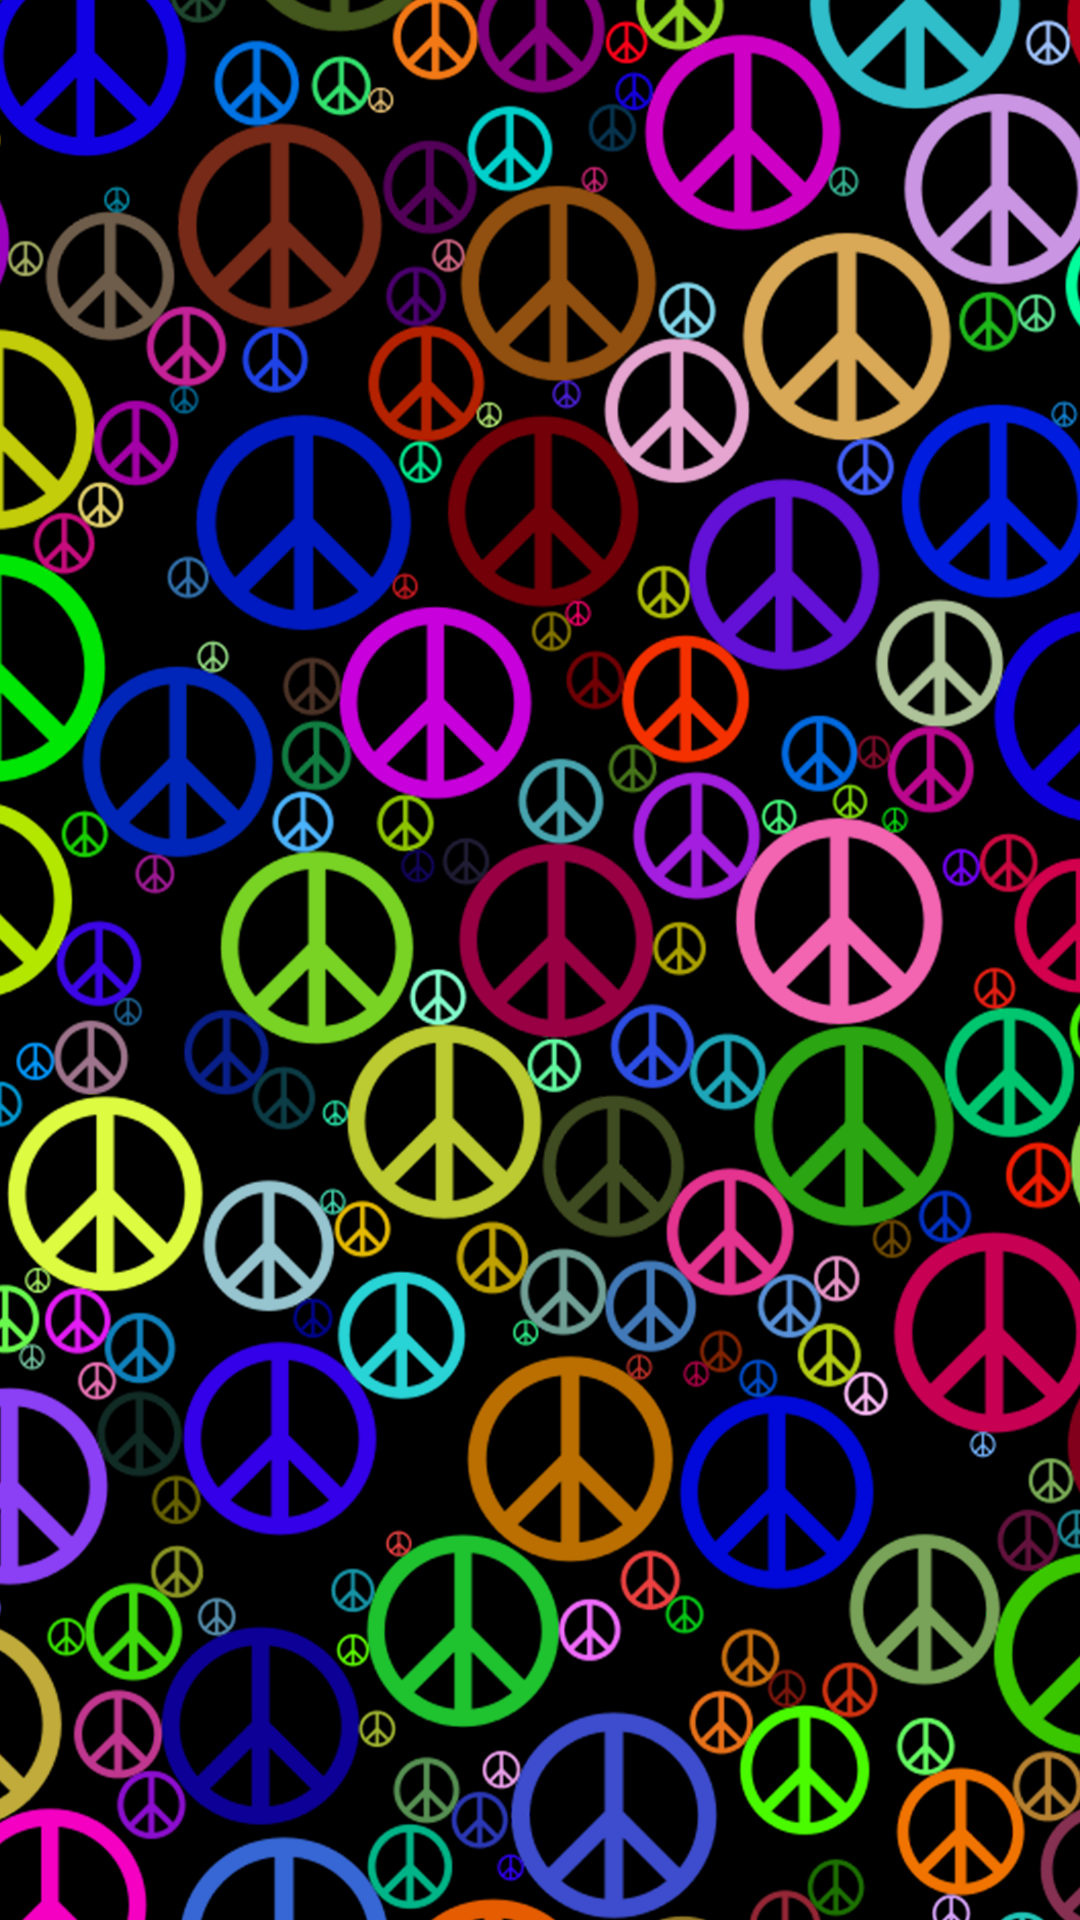 Ultra hd peace signs wallpaper for your mobile phone 0200 peace signs 1080 x 1920 fhd wallpaper peace signs 1080 x 1920 fhd wallpaper voltagebd Gallery